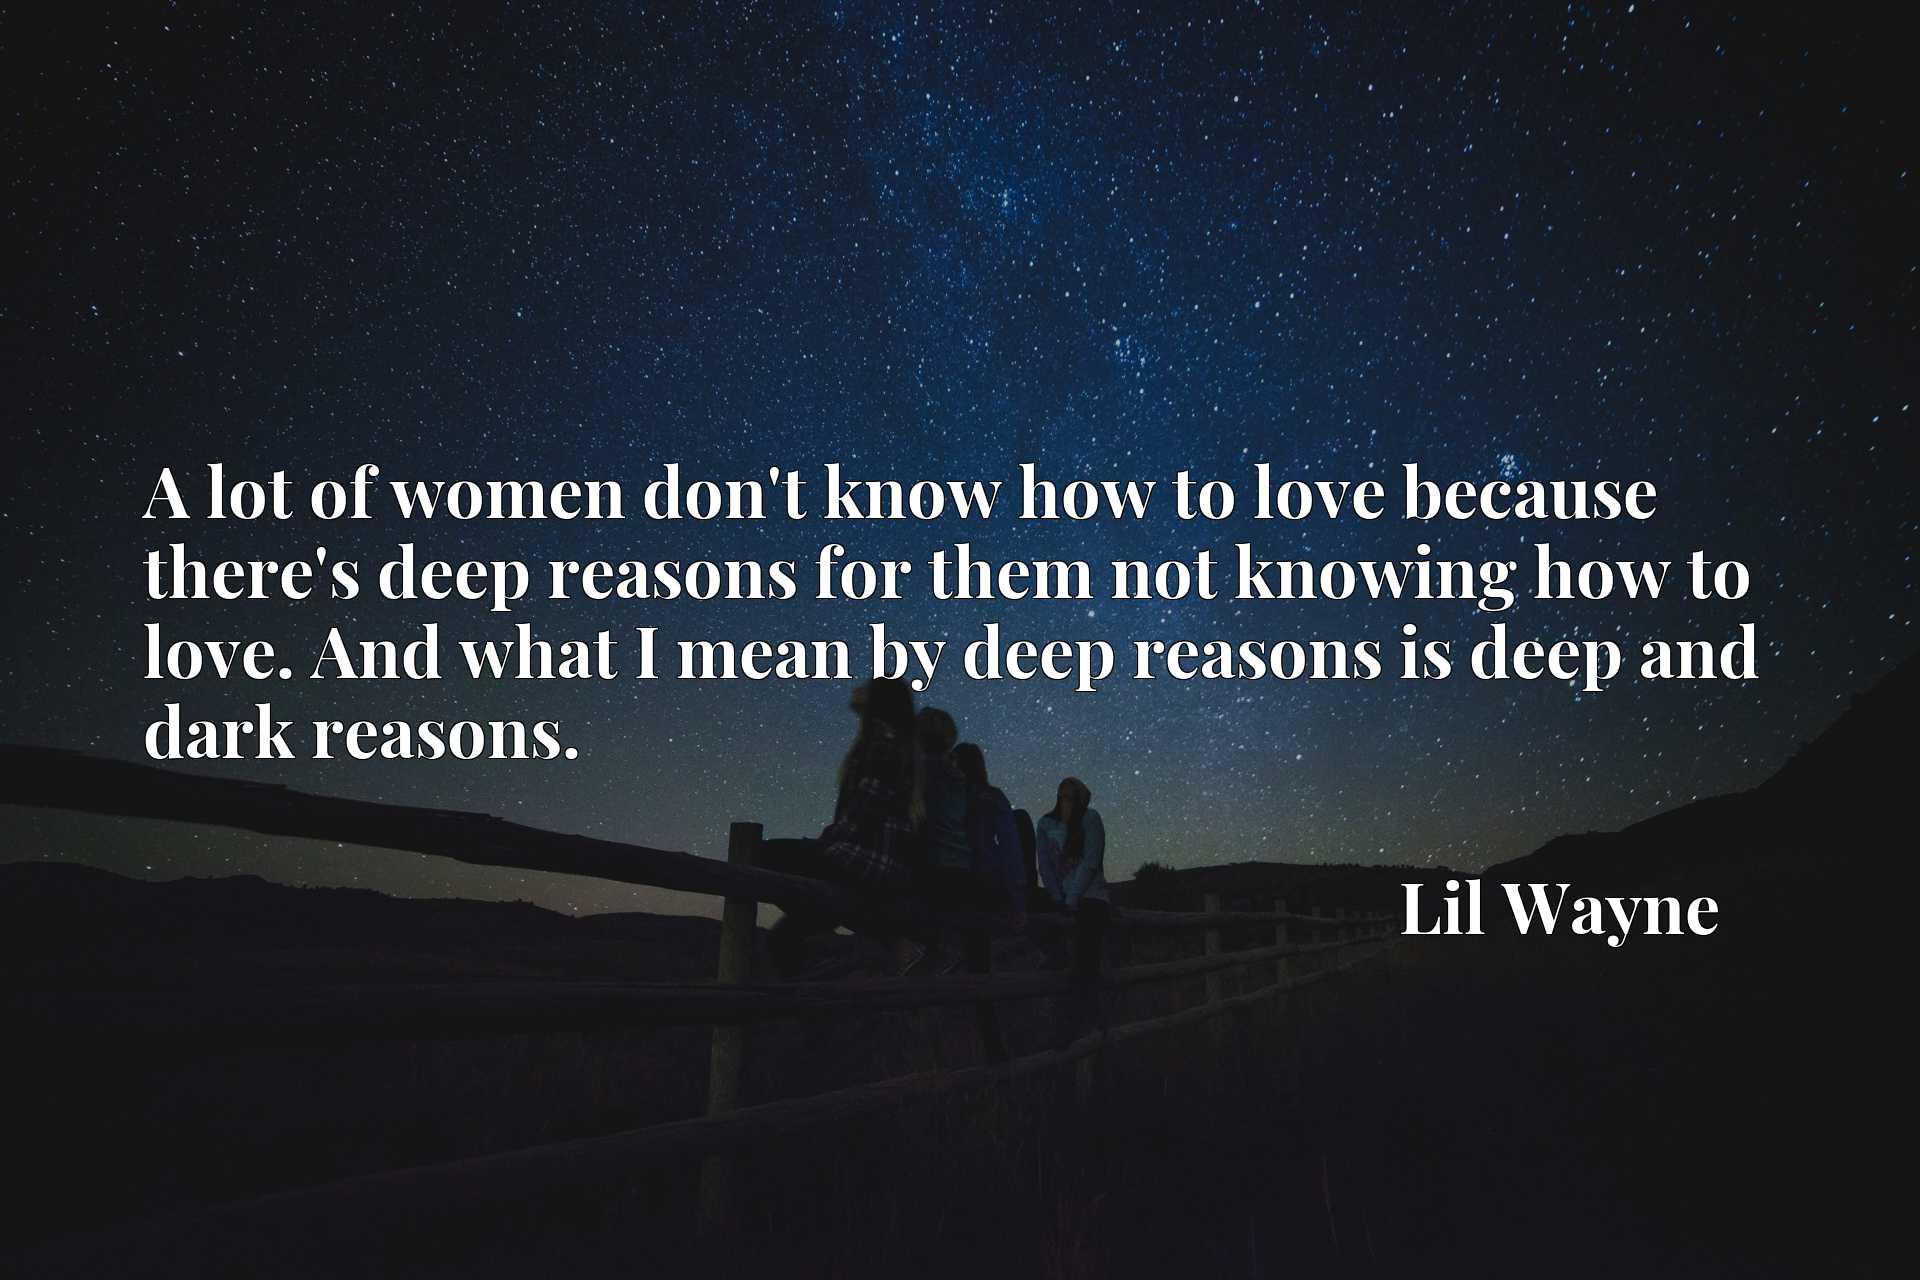 A lot of women don't know how to love because there's deep reasons for them not knowing how to love. And what I mean by deep reasons is deep and dark reasons.